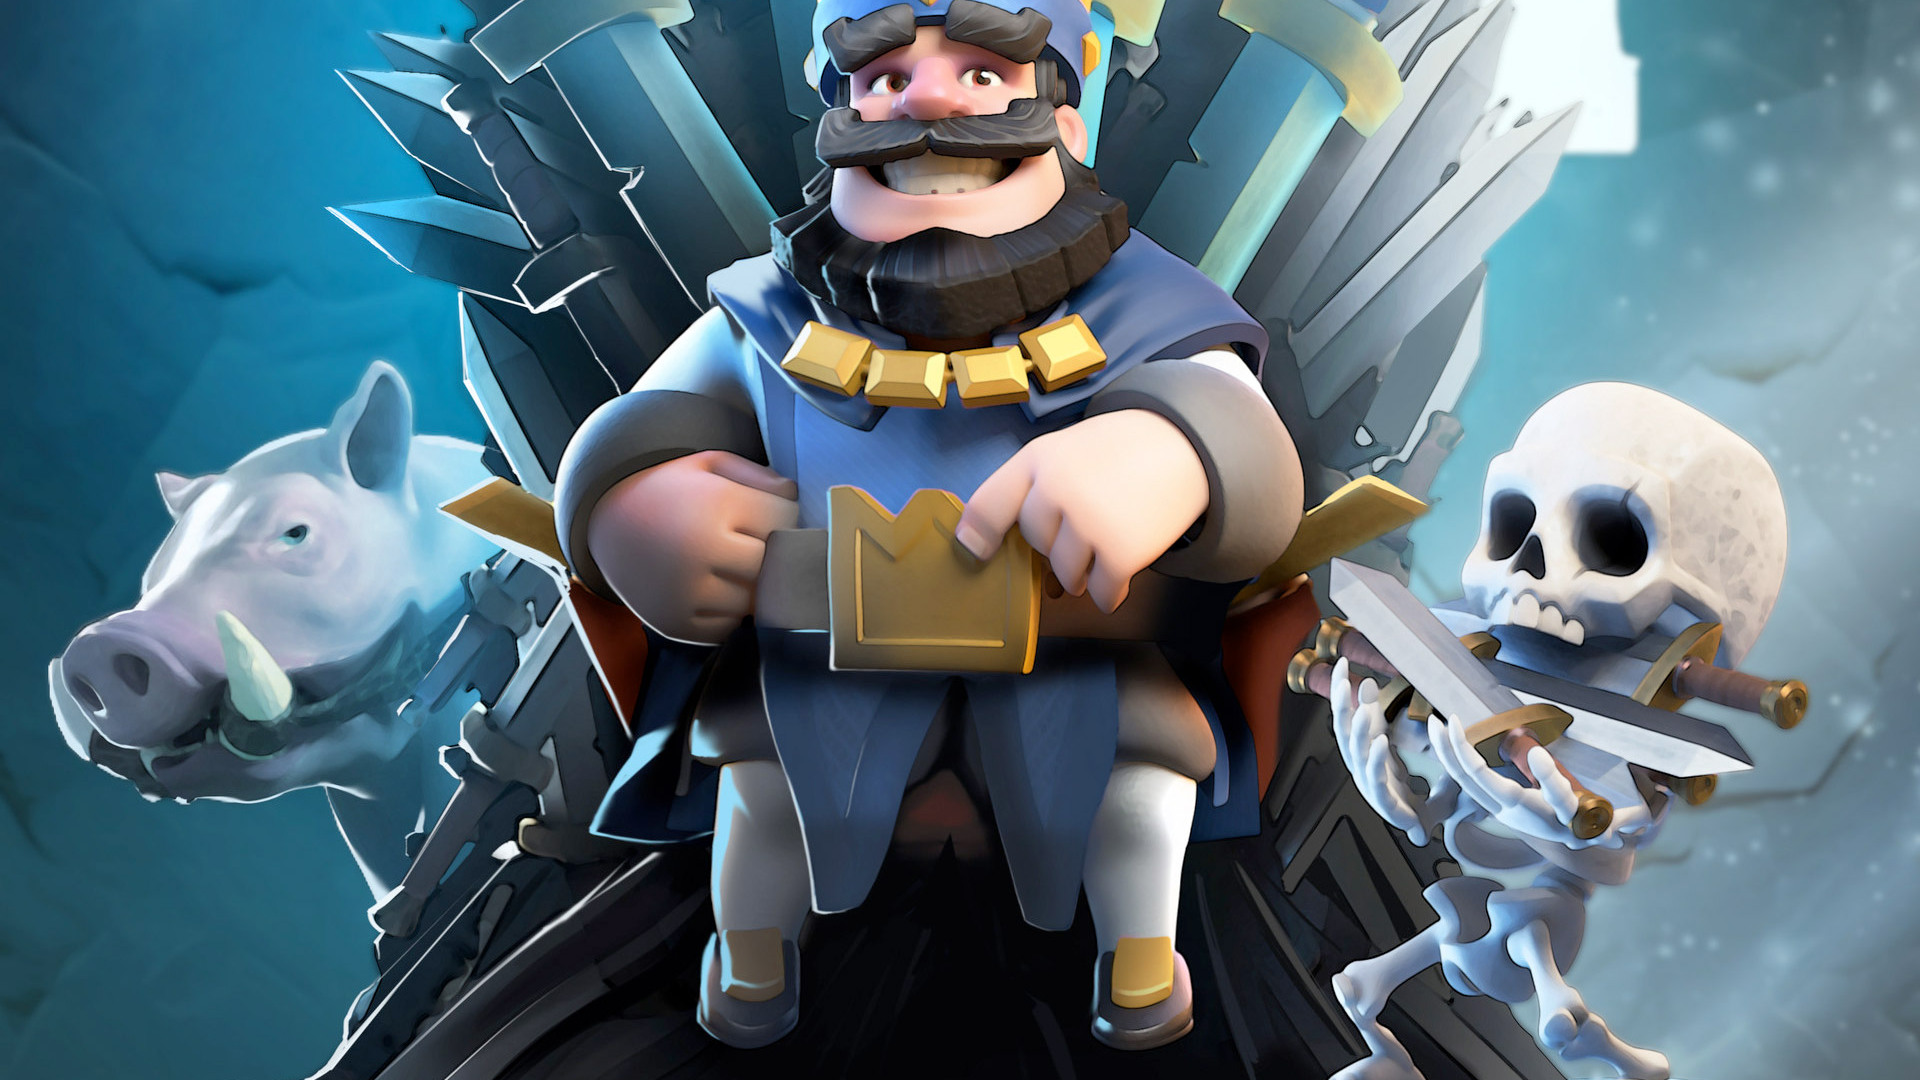 22 clash royale hd wallpapers background images wallpaper abyss - Clash royale 2560x1440 ...